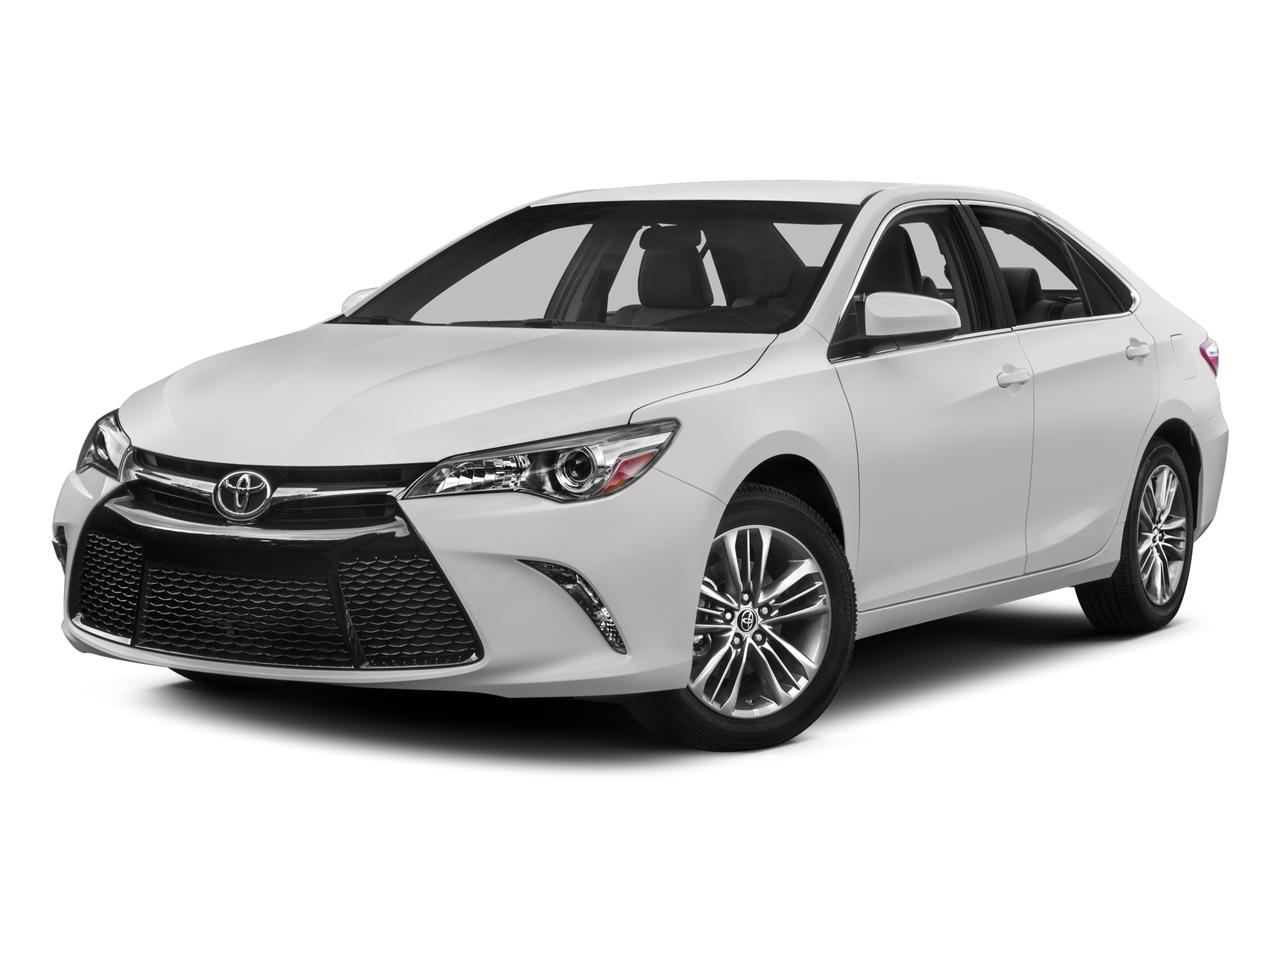 2015 Toyota Camry Vehicle Photo in San Leandro, CA 94577